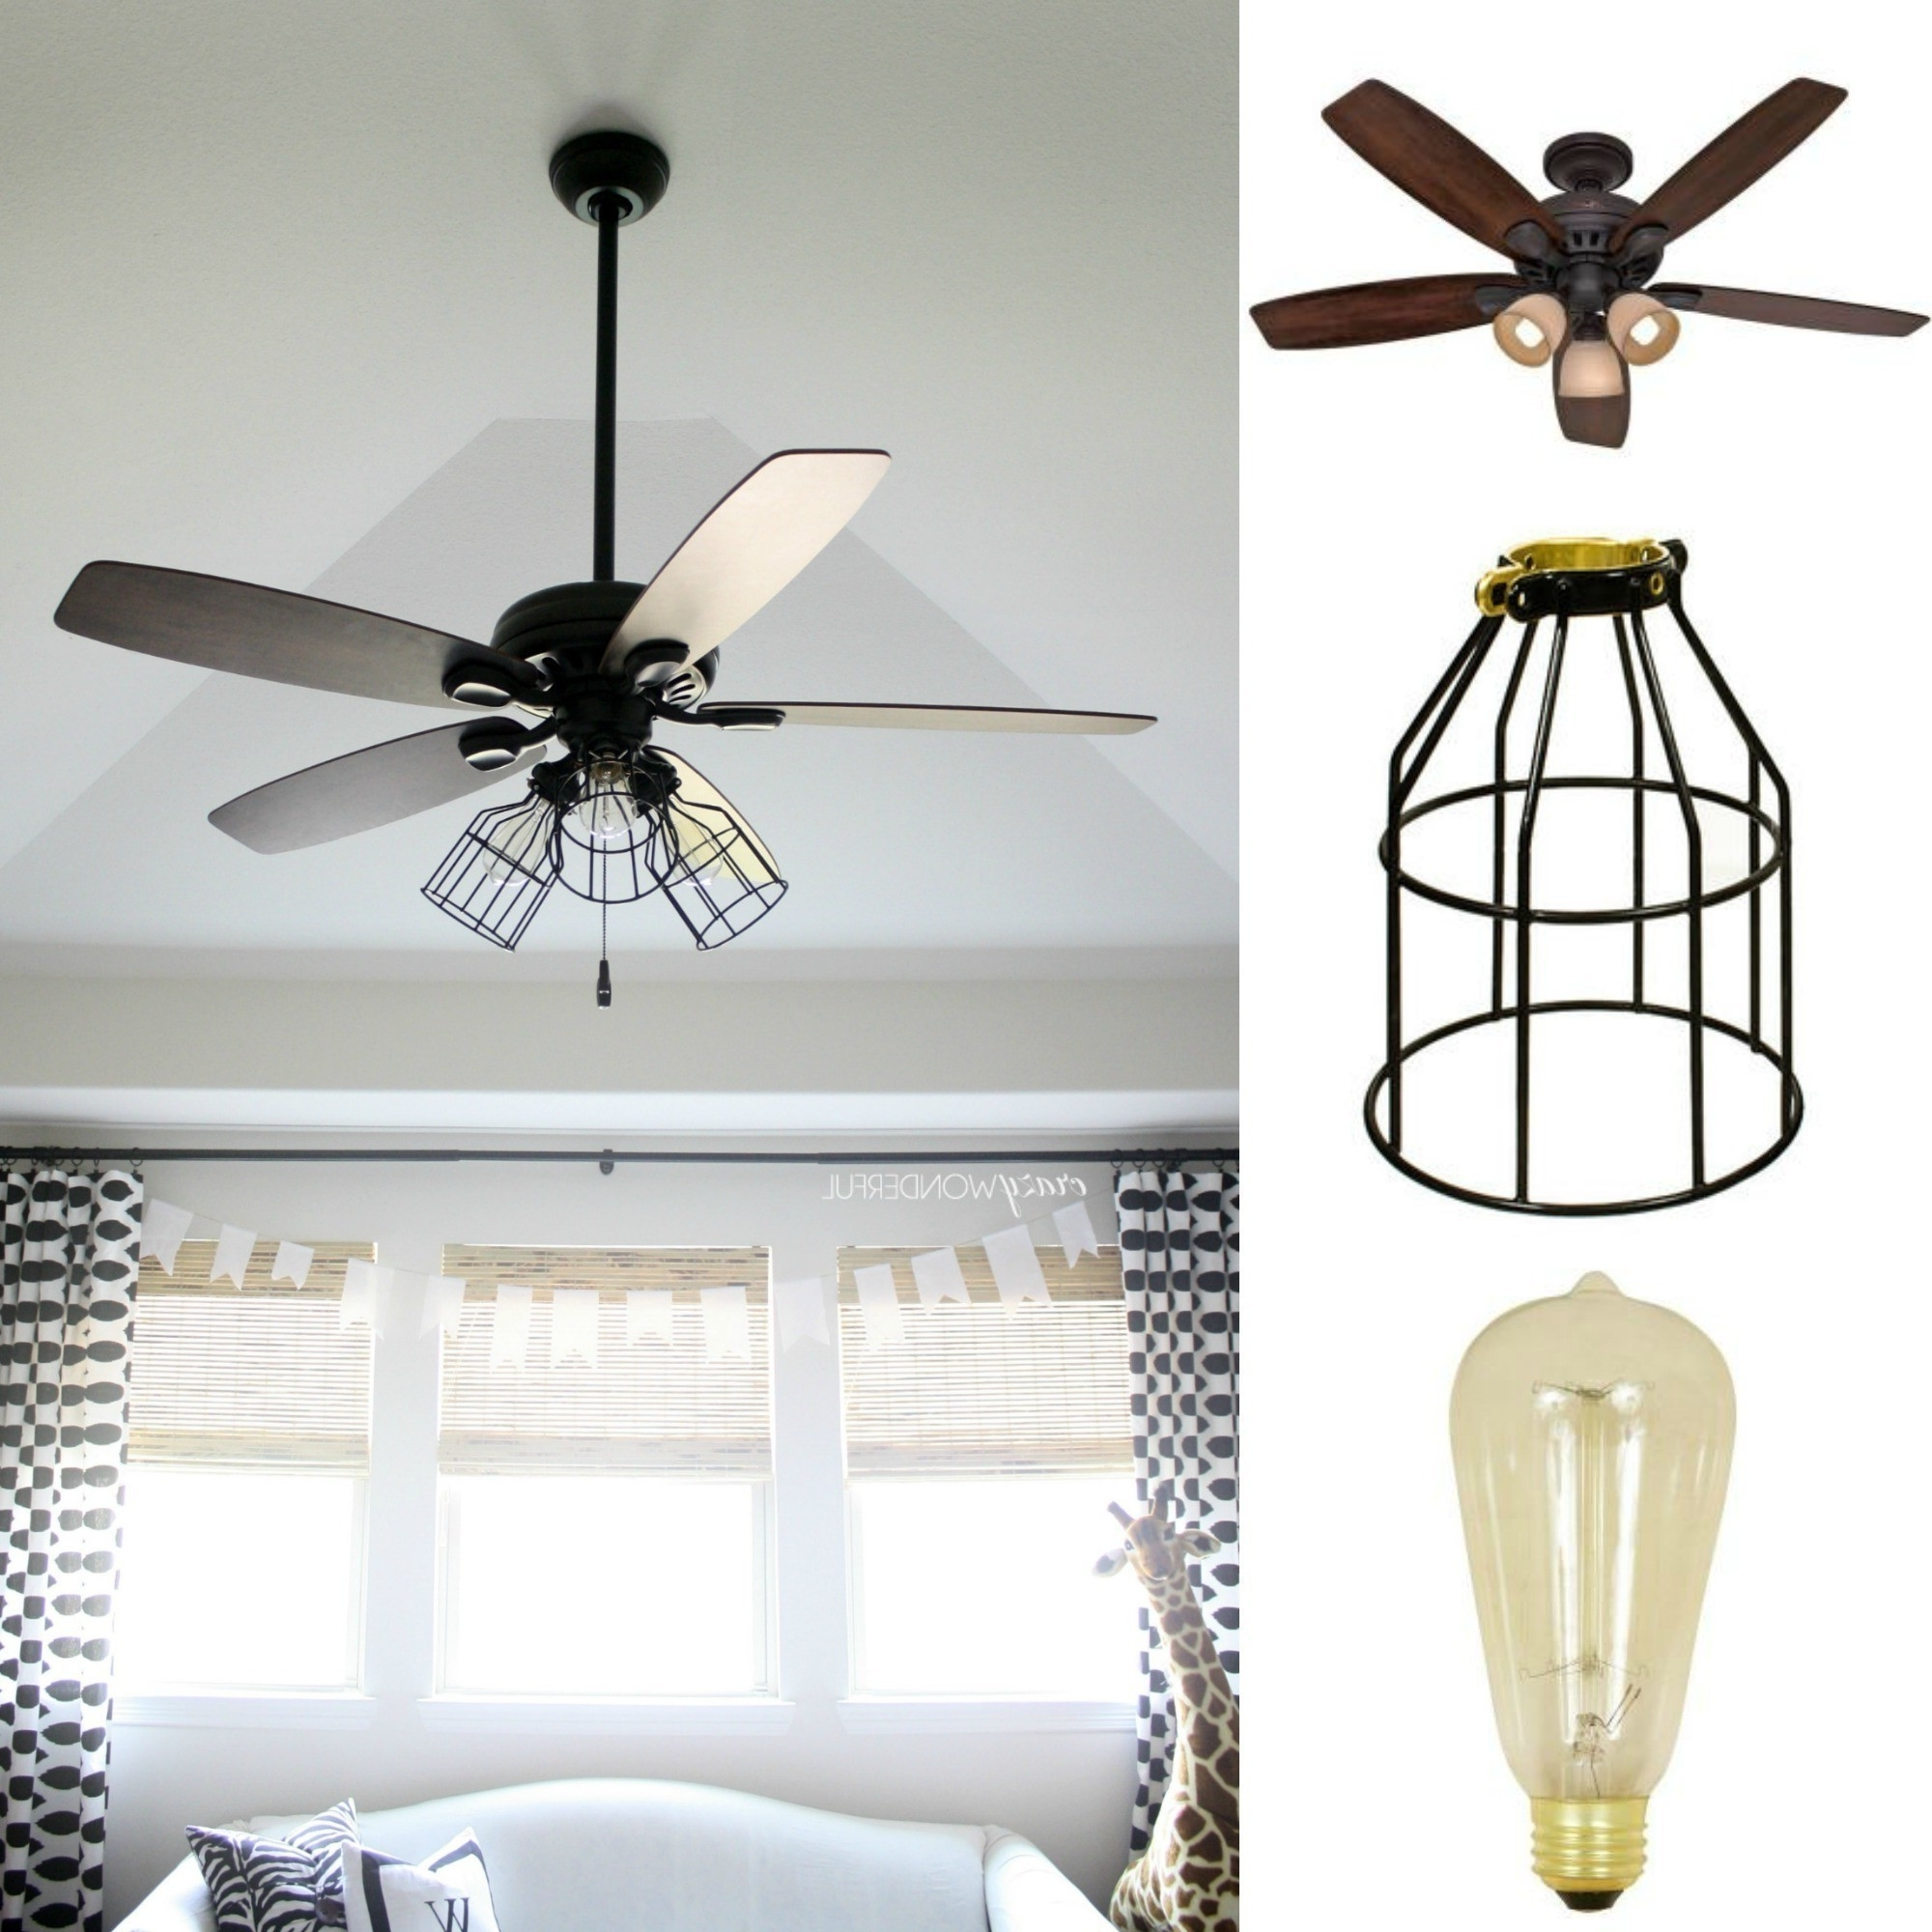 Outdoor Caged Ceiling Fans With Light Within Current Diy Cage Light Ceiling Fan · A Hanging Light · Home + Diy On Cut Out (View 15 of 20)